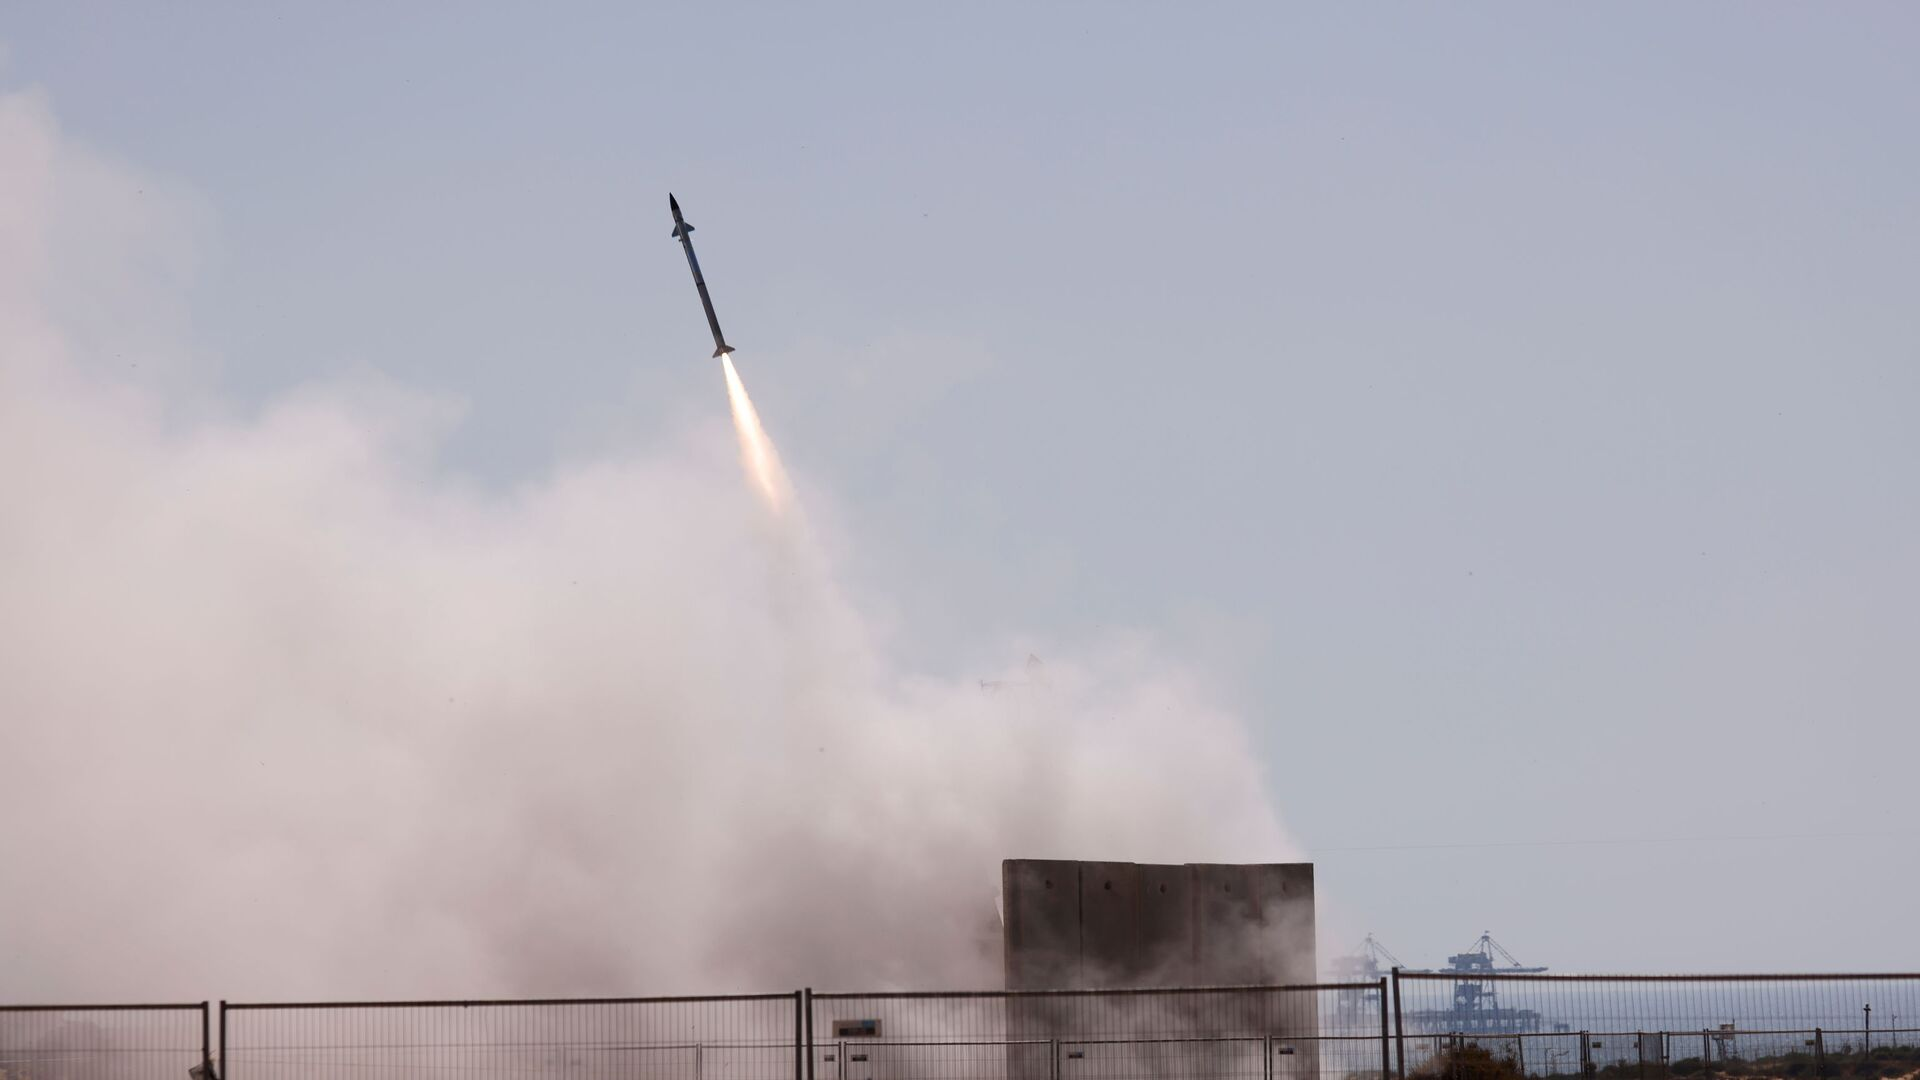 Israel's Iron Dome anti-missile system fires to intercept a rocket launched from the Gaza Strip towards Israel, as seen from Ashkelon, Israel May 12, 2021 - Sputnik International, 1920, 11.09.2021